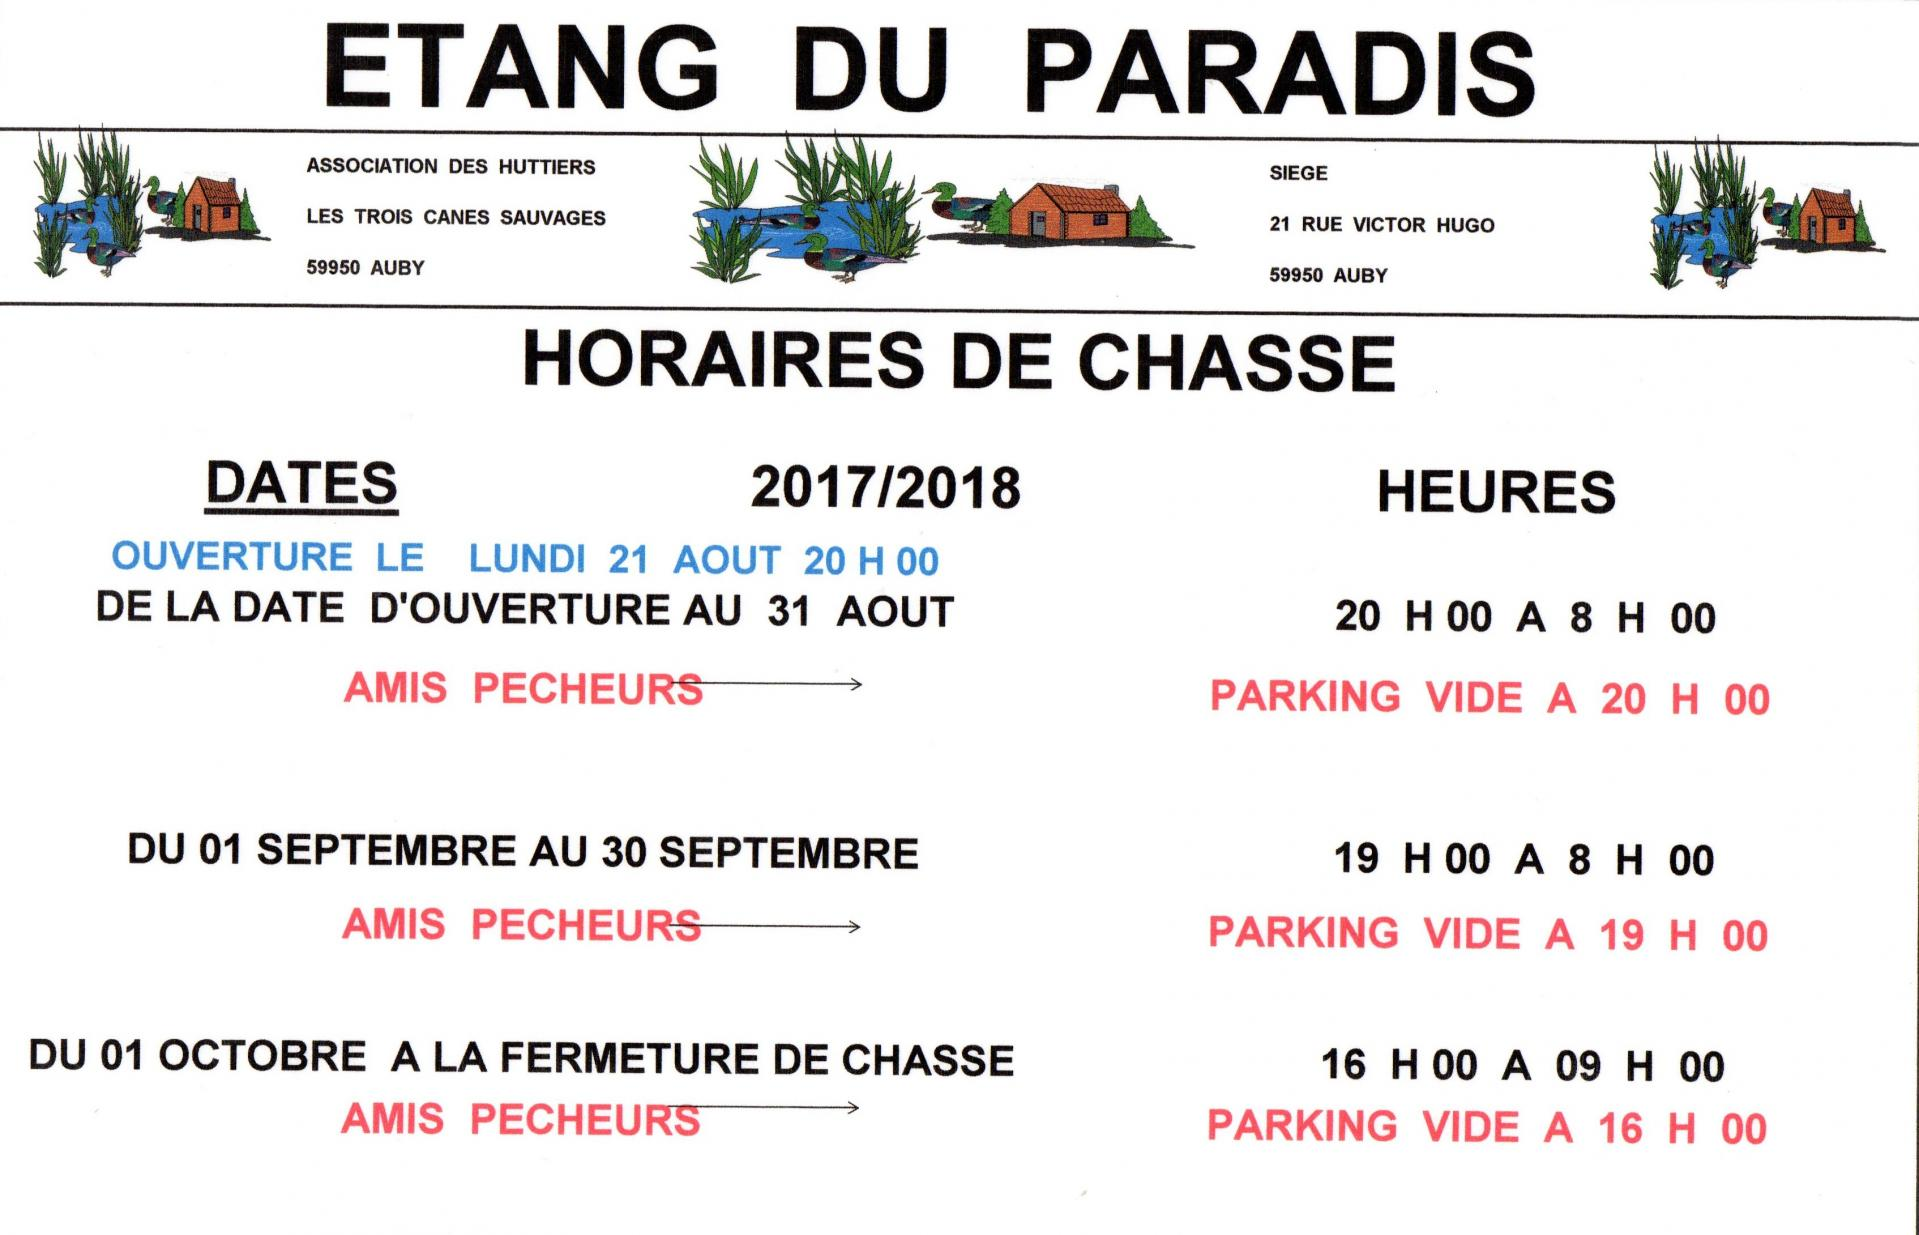 Horaire chasse 2017 auby